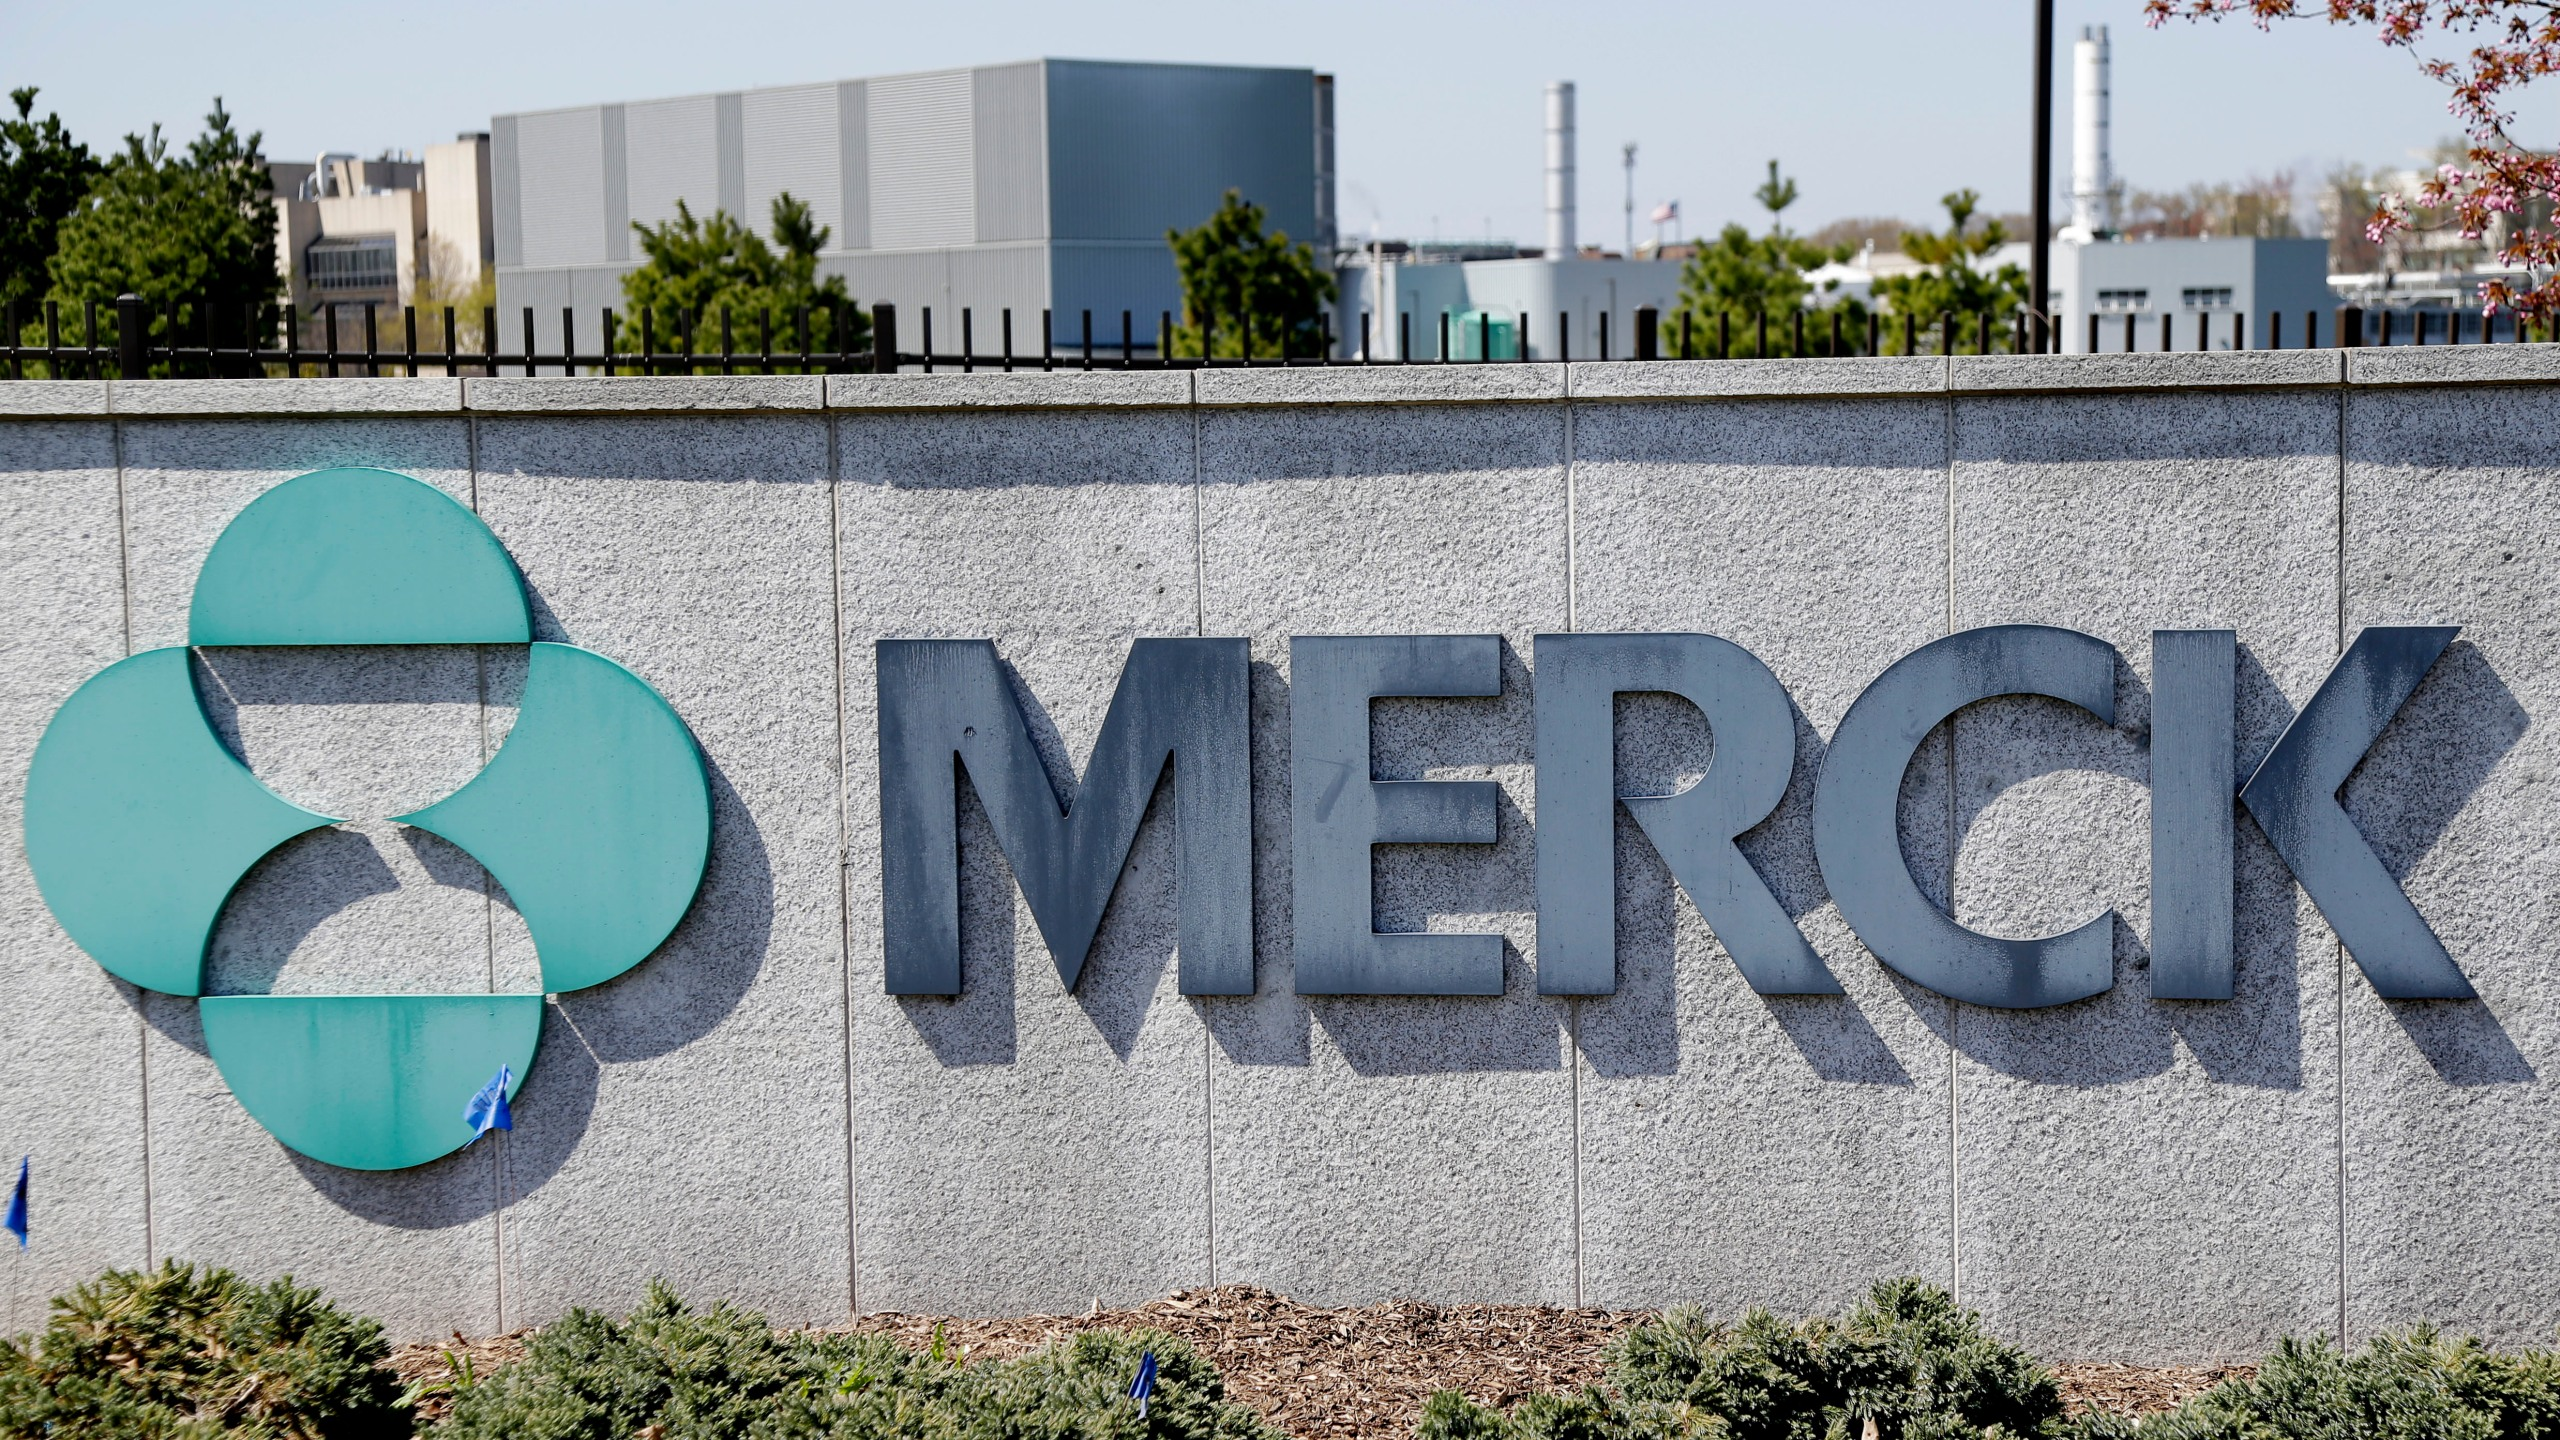 This May 1, 2018, file photo shows Merck corporate headquarters in Kenilworth, N.J. The drugmaker will stop developing two potential COVID-19 vaccines after seeing poor results in early-stage studies. The company said Monday, Jan. 25, 2021, that it will focus instead on studying two possible treatments for the virus that also have yet to be approved by regulators. (AP Photo/Seth Wenig, File)